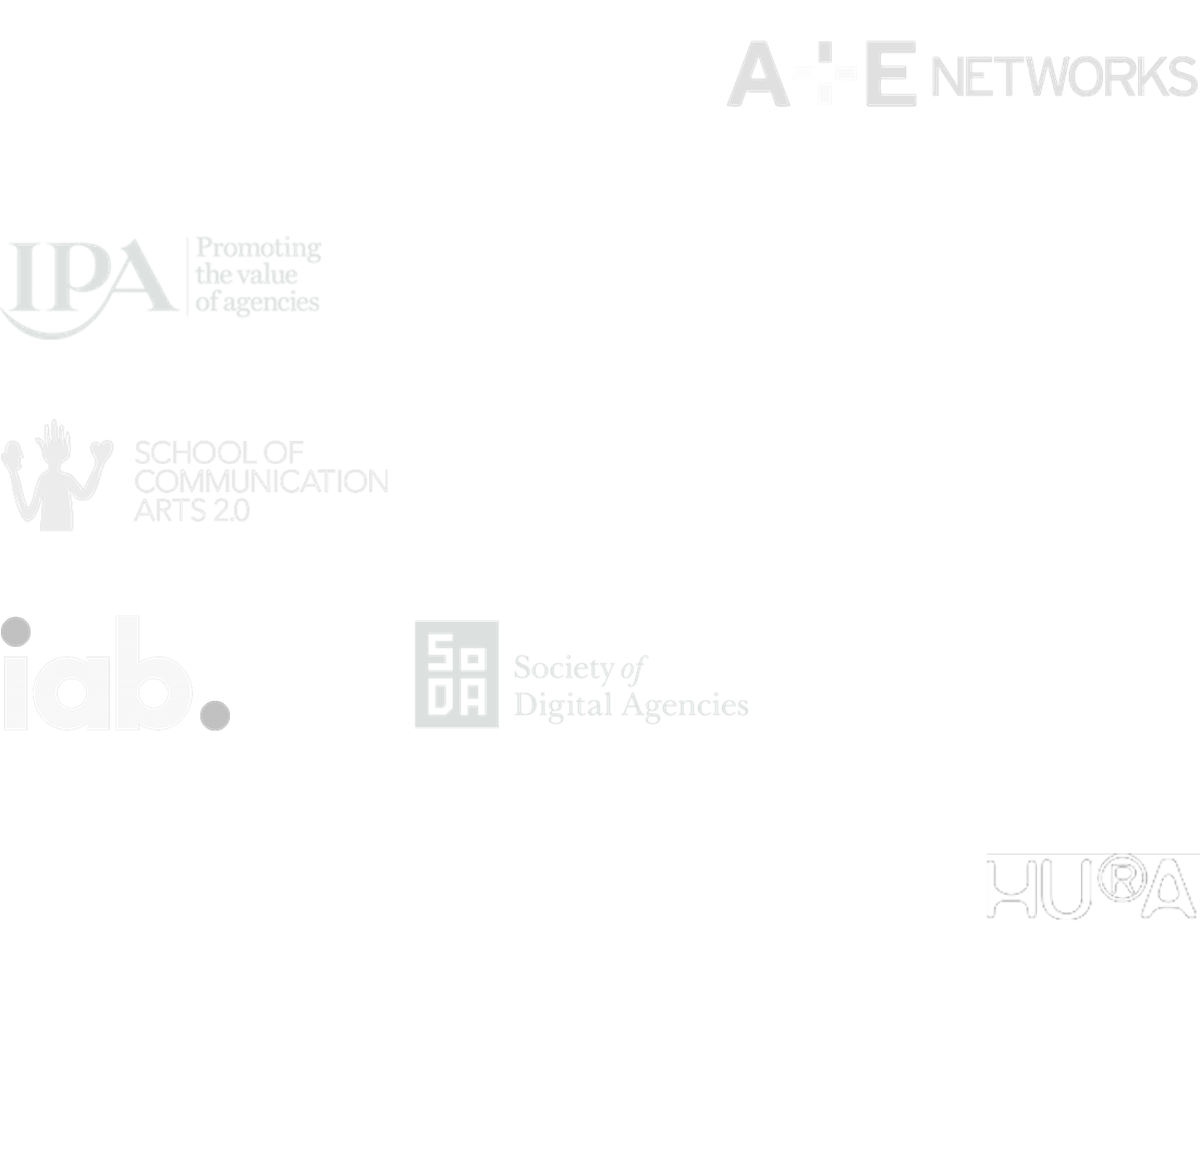 Logos of smart organisations who've used Additive